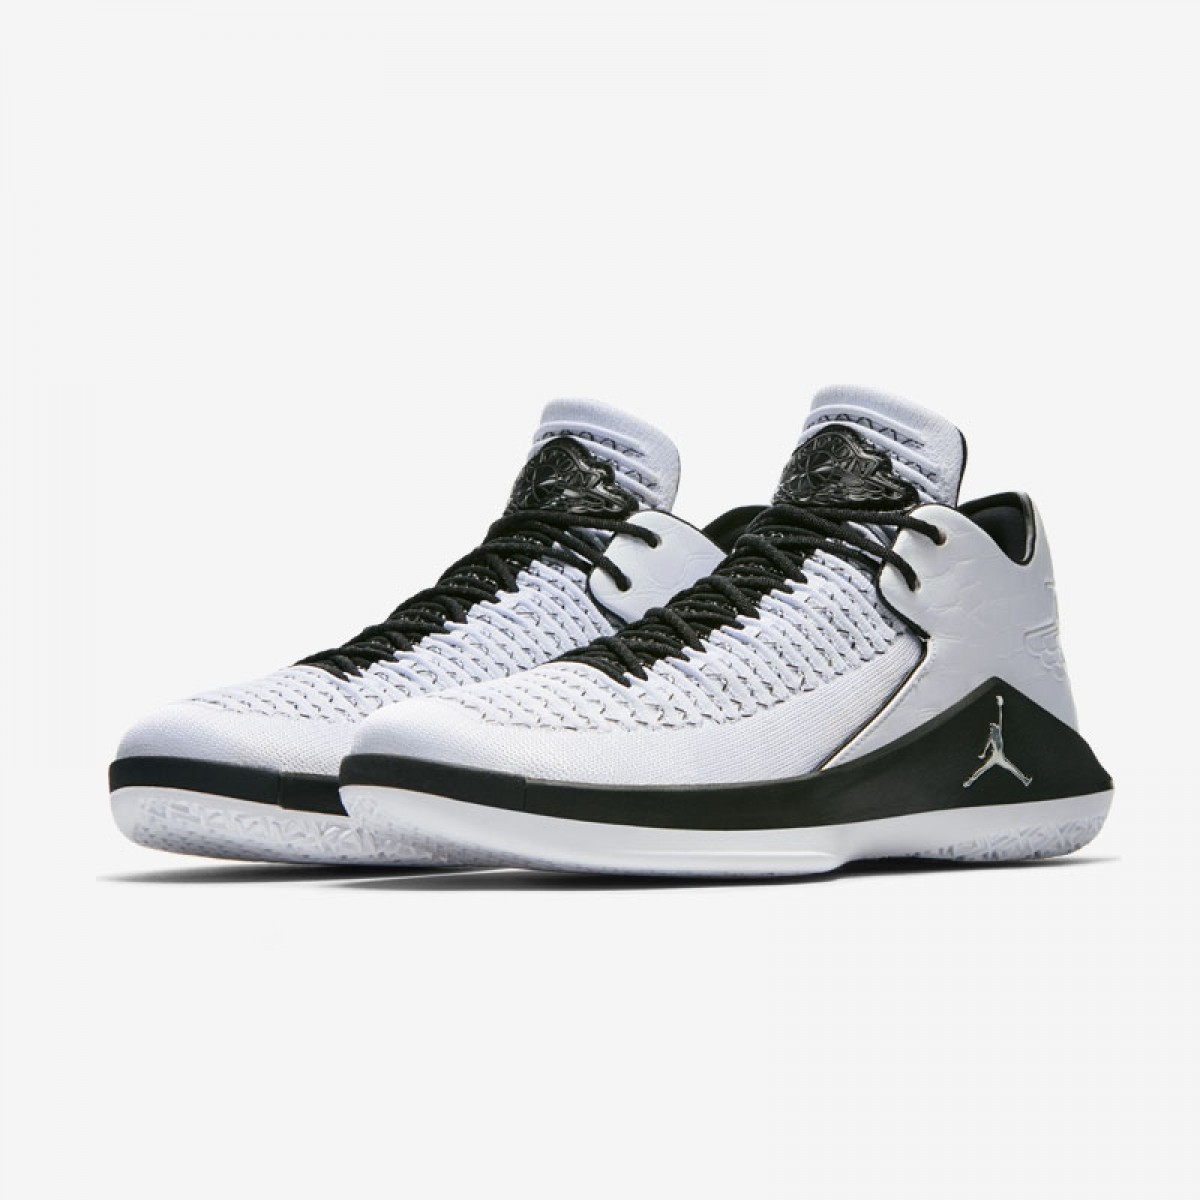 Air Jordan XXX2 Low 'Wing It' AA1256-102